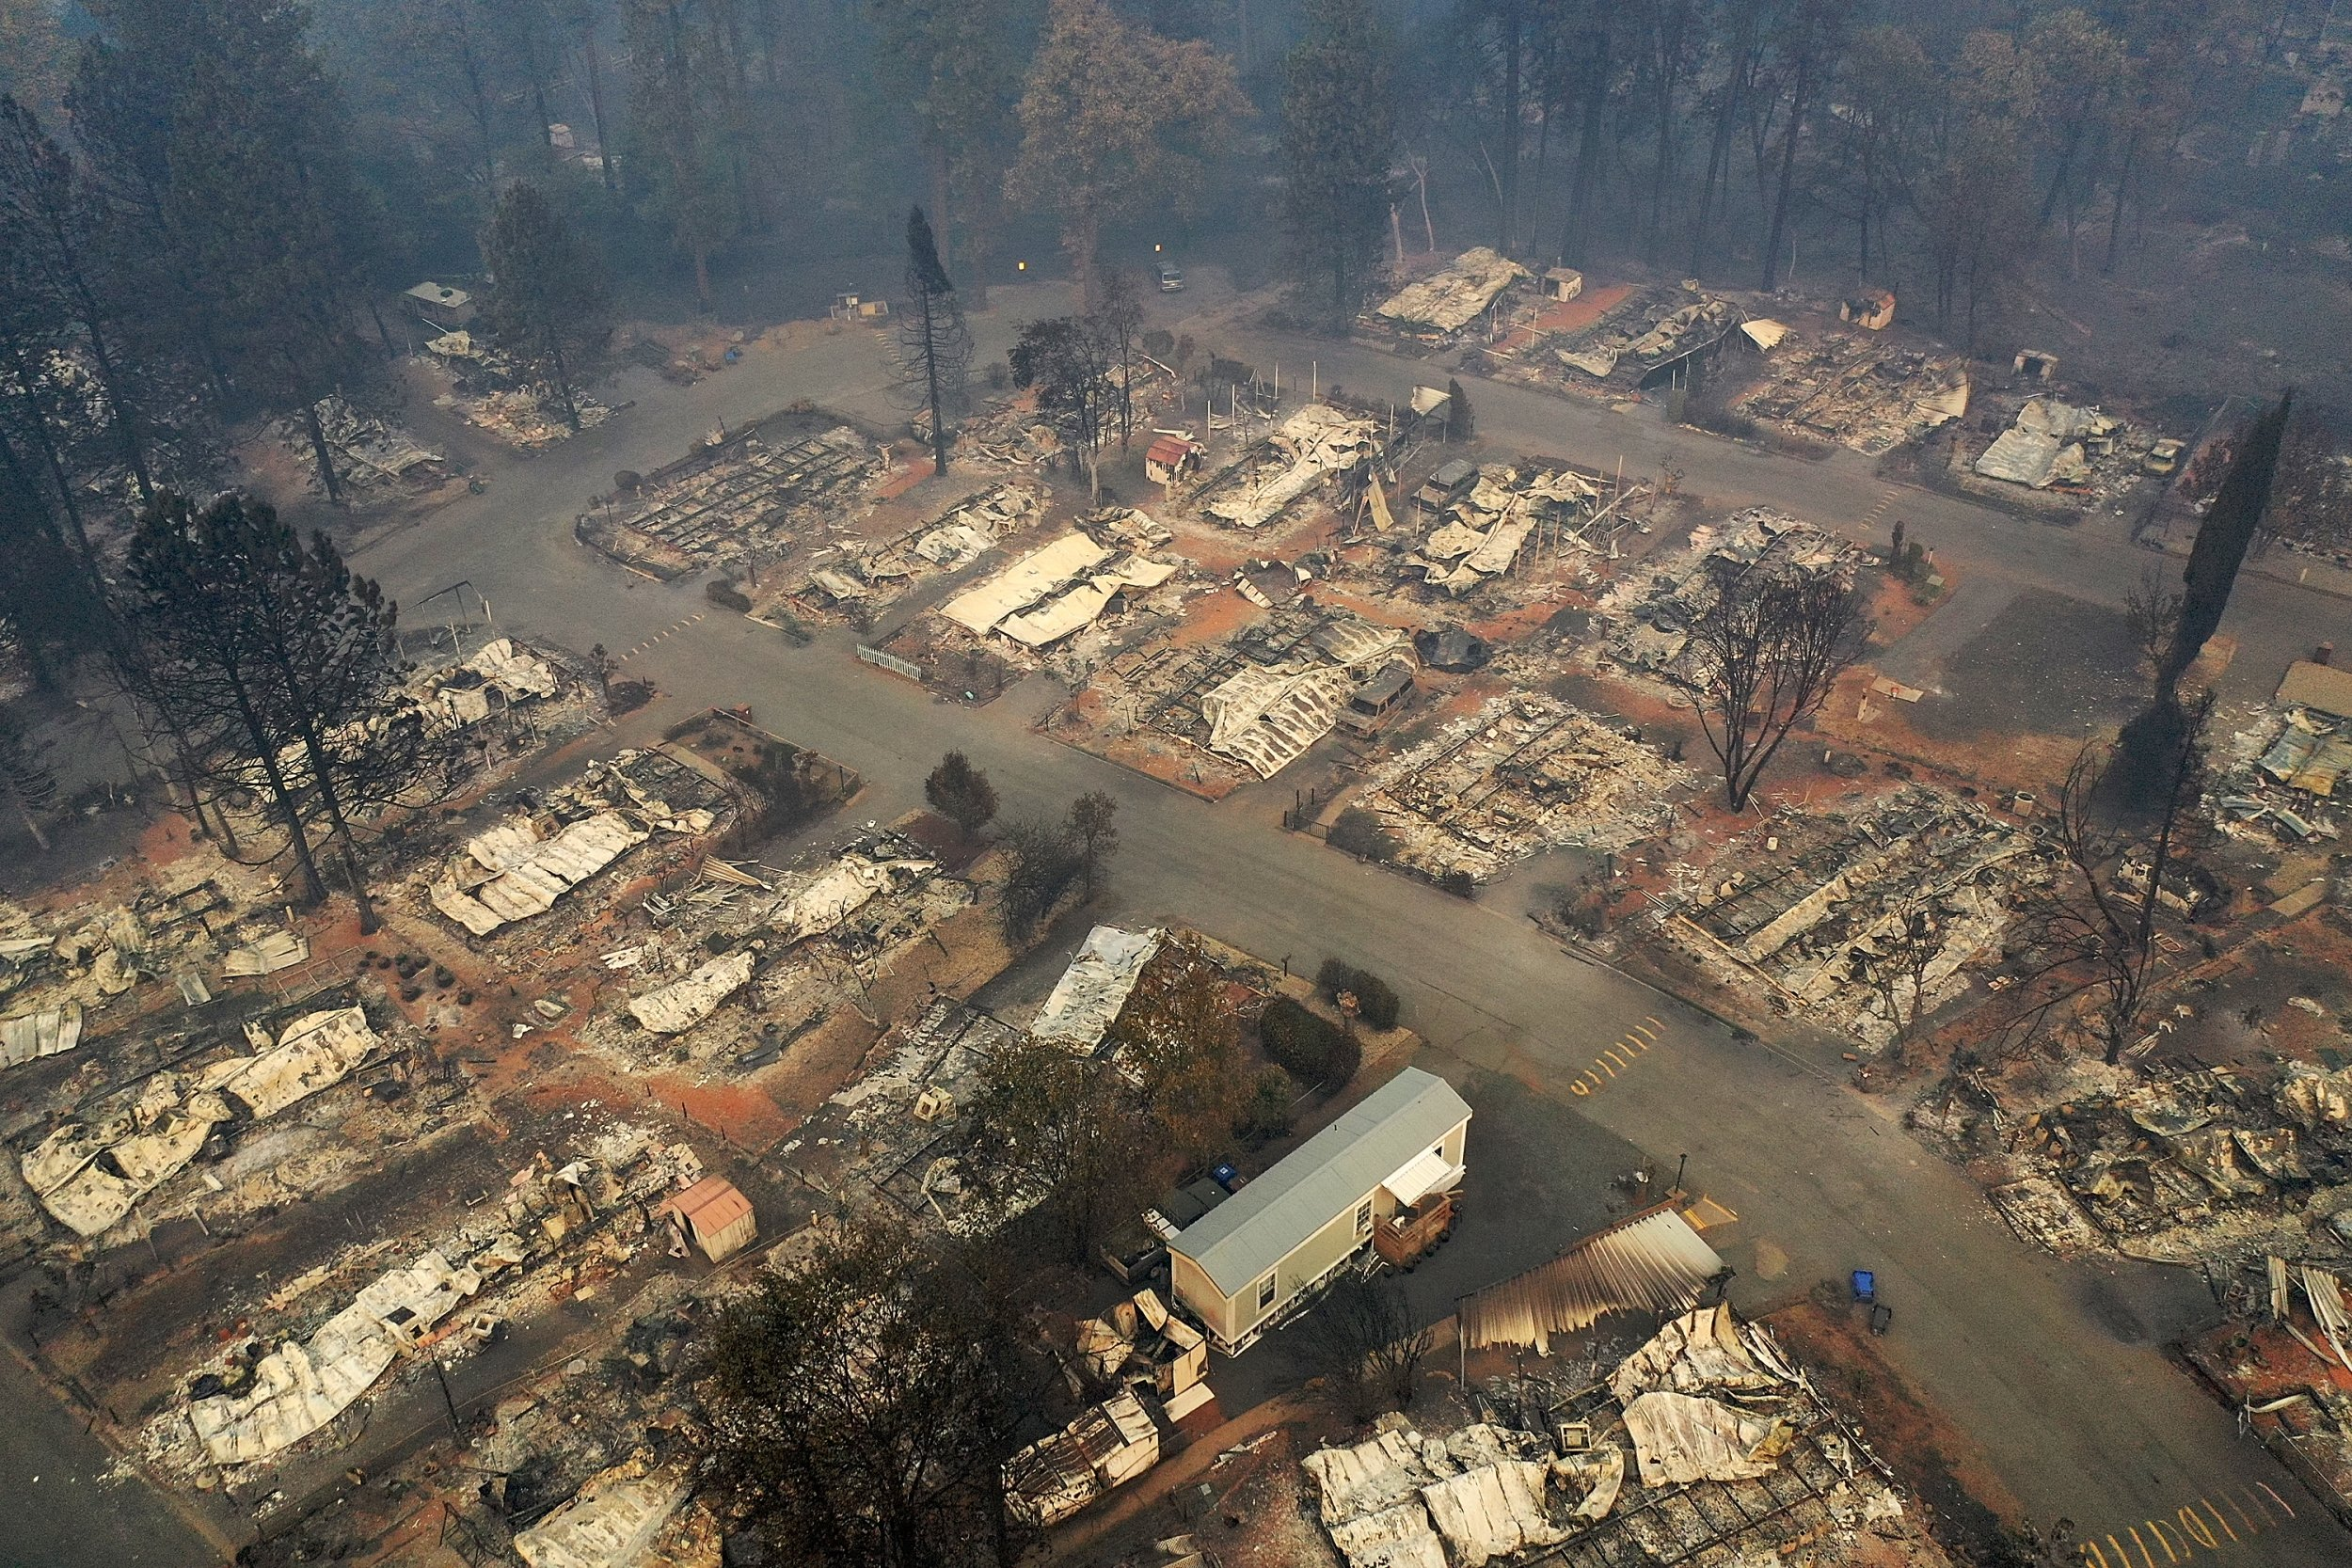 Image result for paradise ca fire